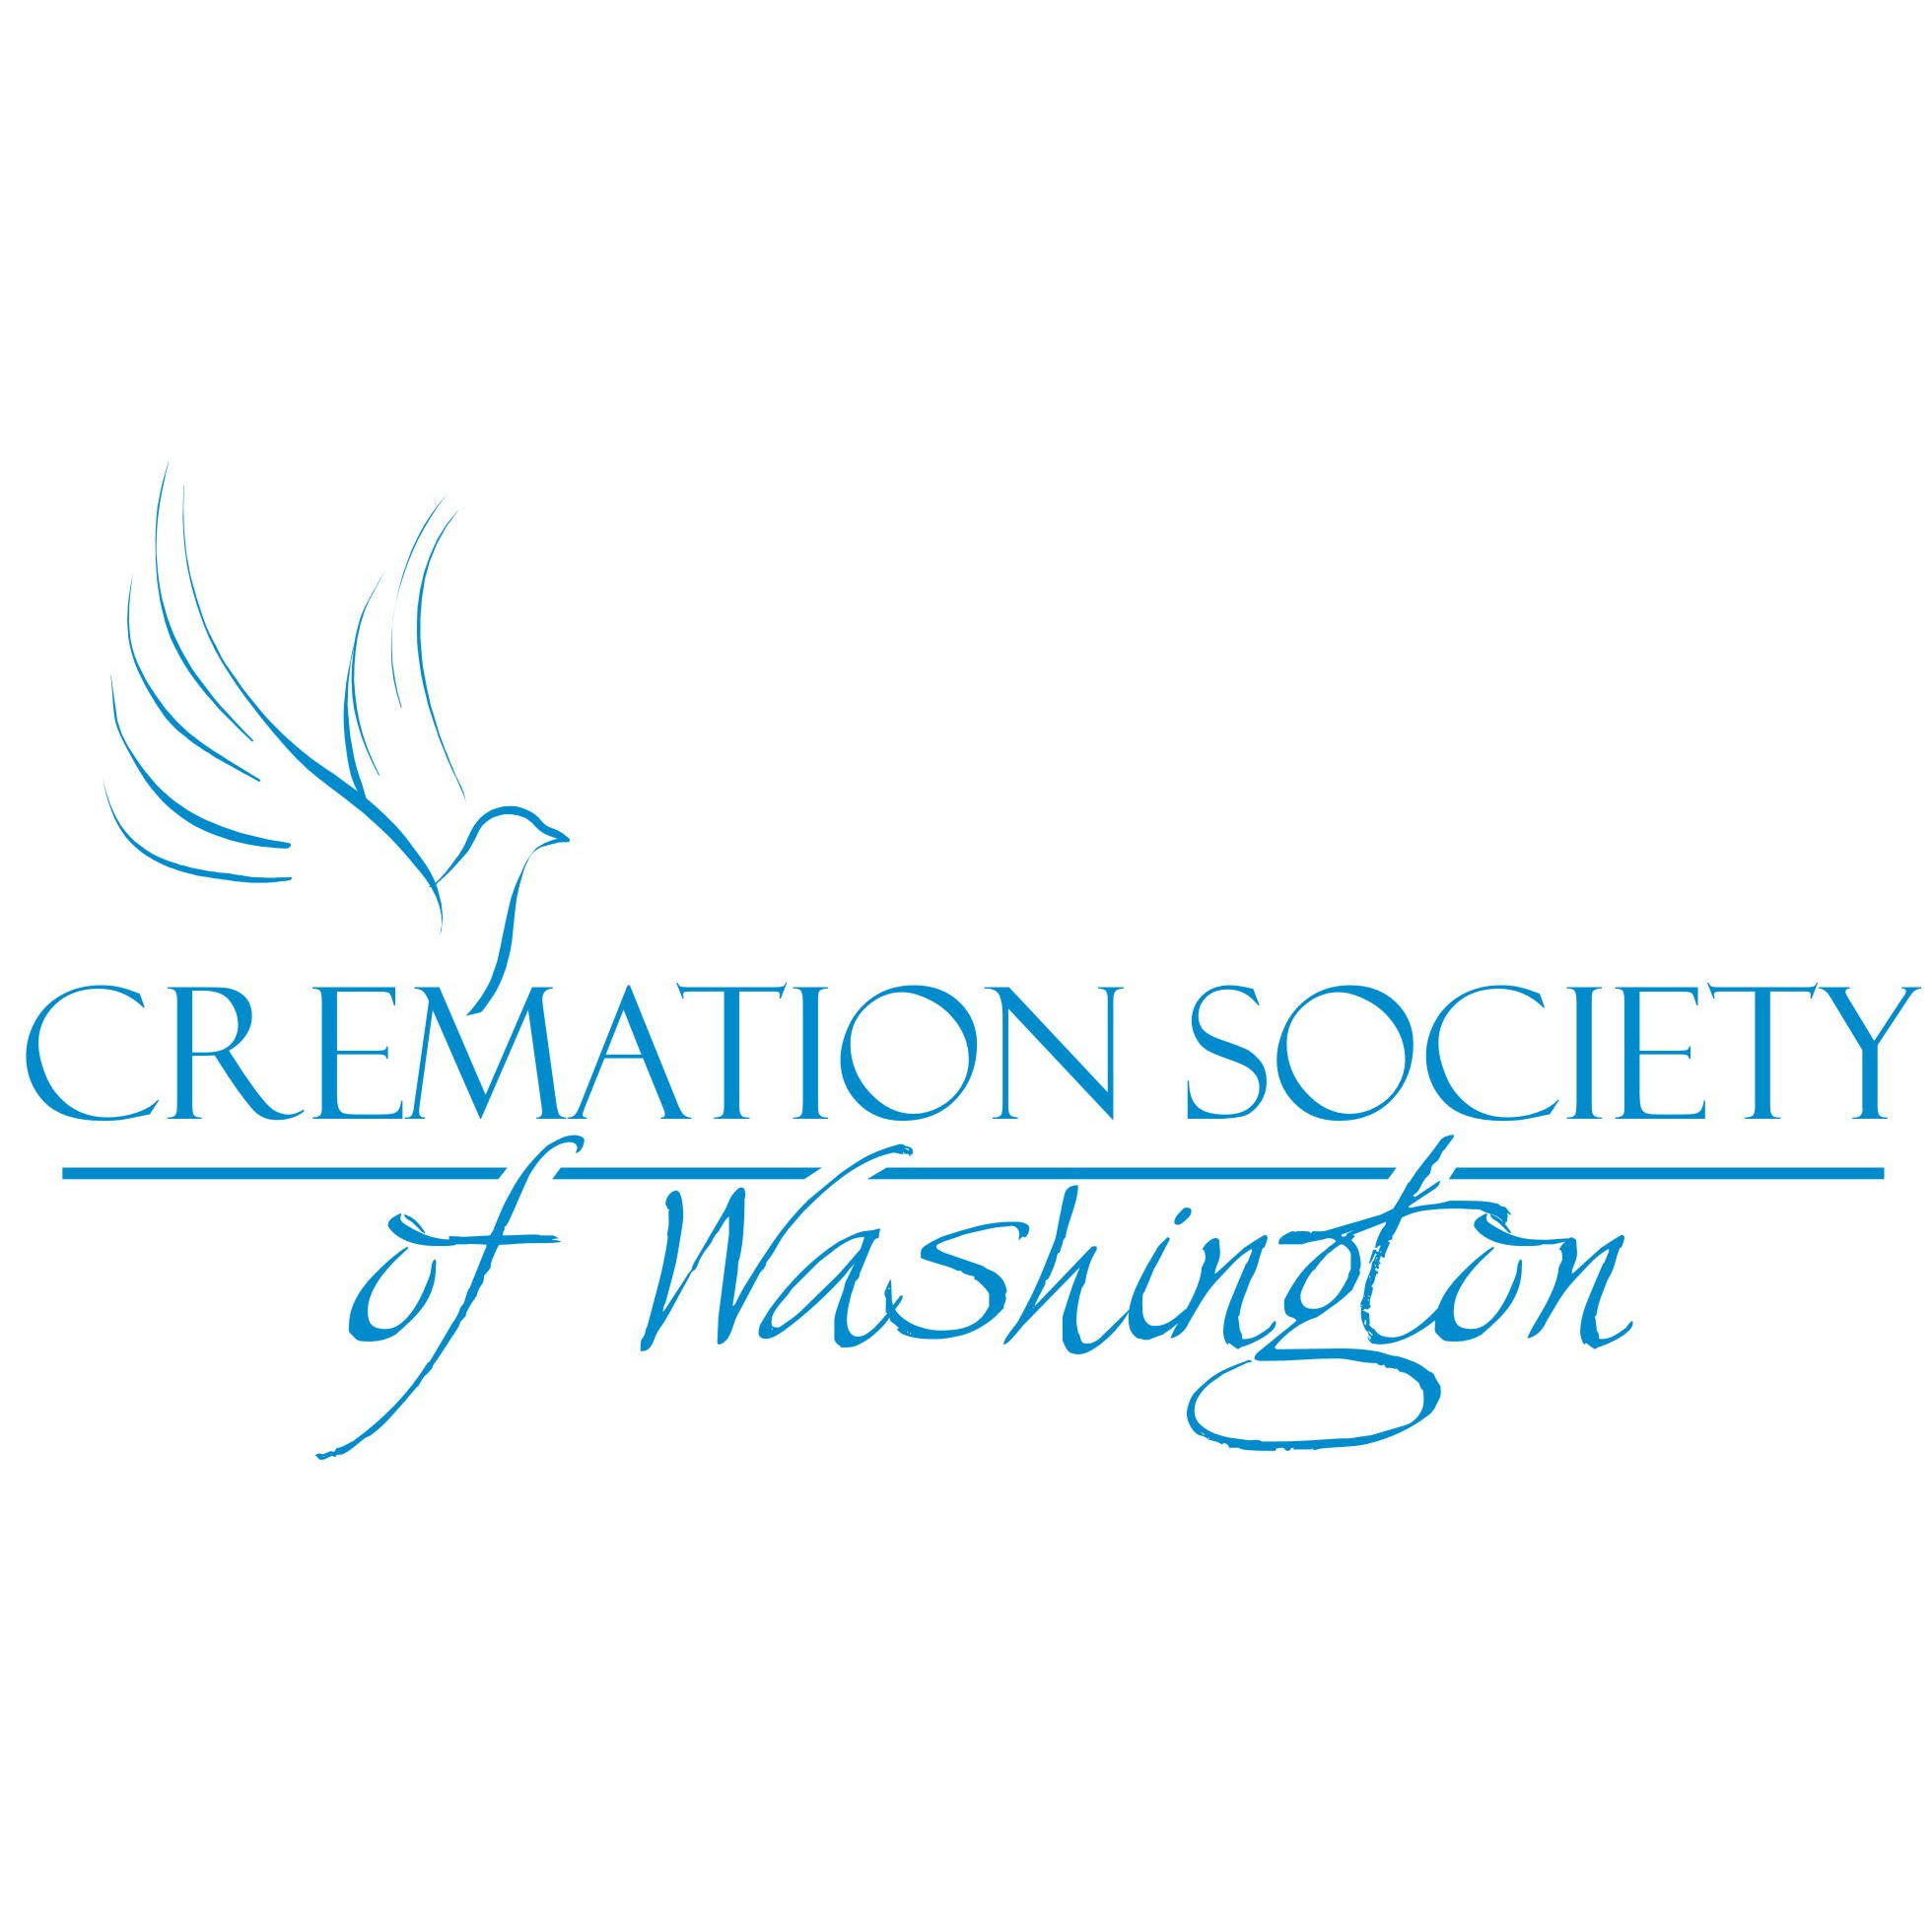 Cremation Society of Washington - Tacoma, WA - Funeral Homes & Services